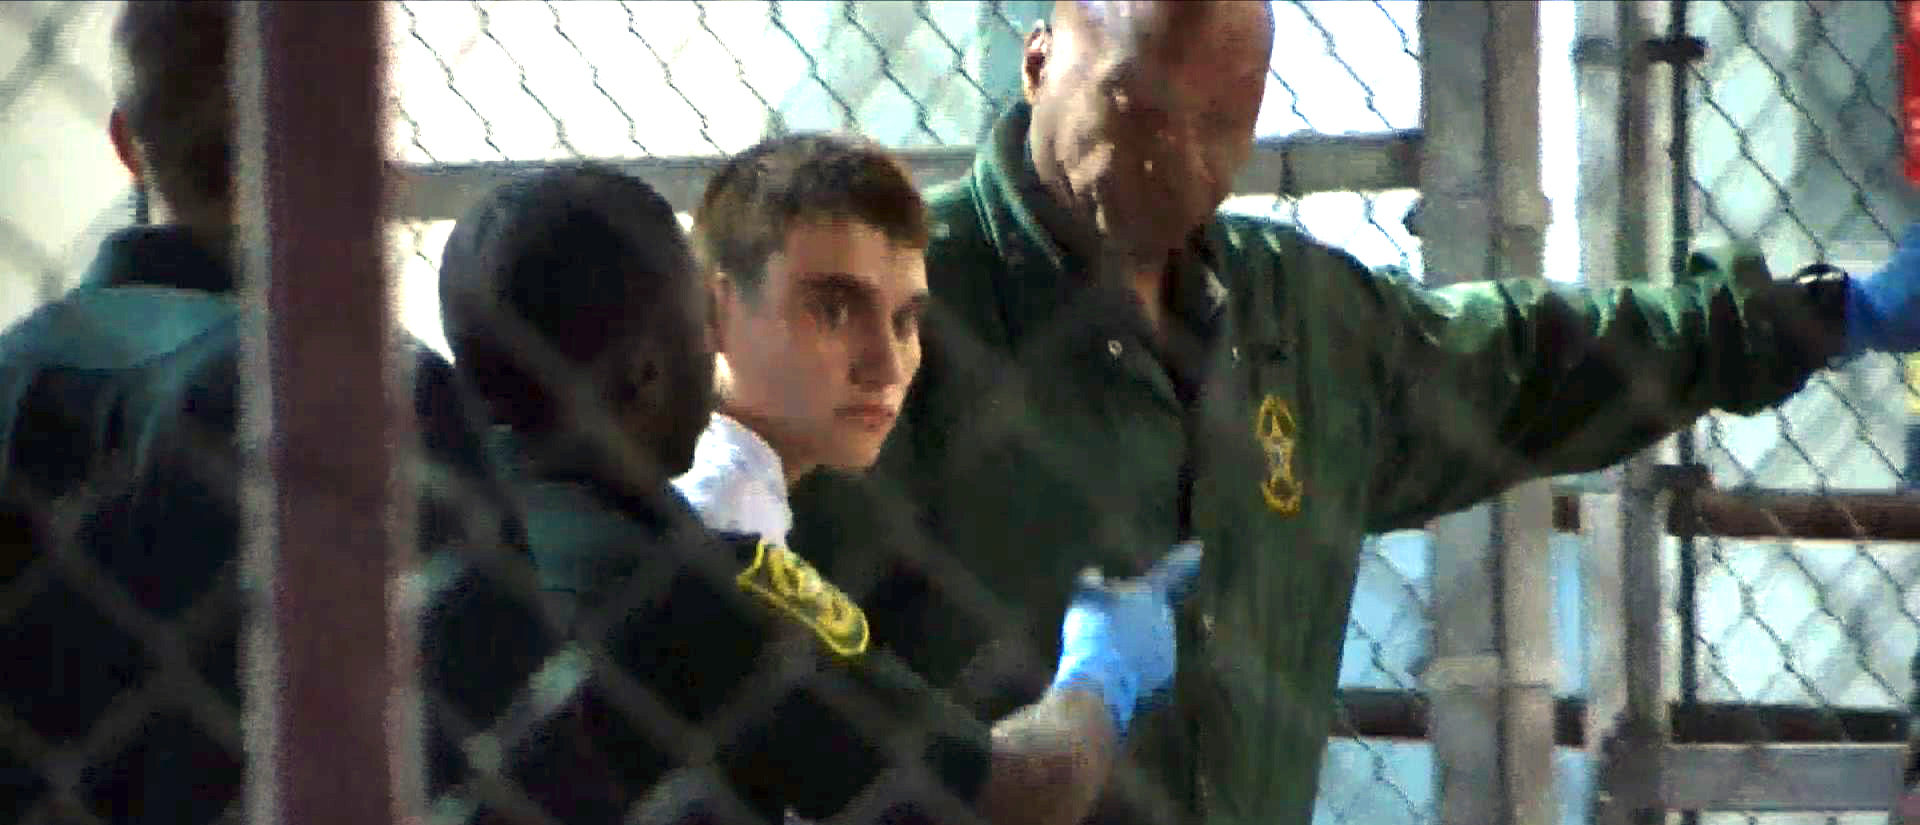 This video screen grab image shows shooting suspect Nikolas Cruz on February 15, 2018 at Broward County Jail in Ft. Lauderdale, Florida. The heavily armed teenager who gunned down students and adults at a Florida high school was charged Thursday with 17 counts of premeditated murder, court documents showed. Nikolas Cruz, 19, killed fifteen people in a hail of gunfire at Marjory Stoneman Douglas High School in Parkland, Florida. Two others died of their wounds later in hospital, the sheriff's office said. / AFP PHOTO / AFP TV / Miguel GUTTIEREZ